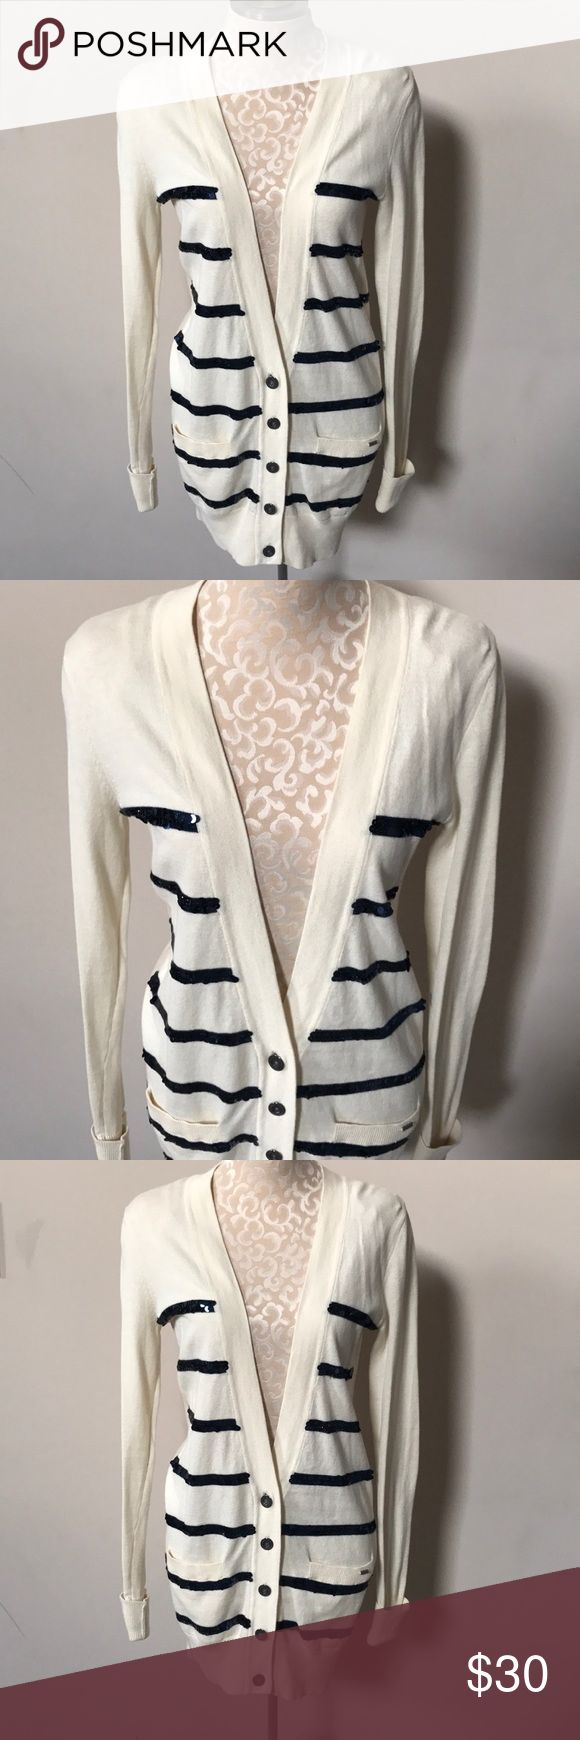 Victoria's Secret PINK Sequin Cardigan Creme Cardigan with royal blue Sequin stripes. Worn one time.  Excellent condition. PINK Victoria's Secret Sweaters Cardigans